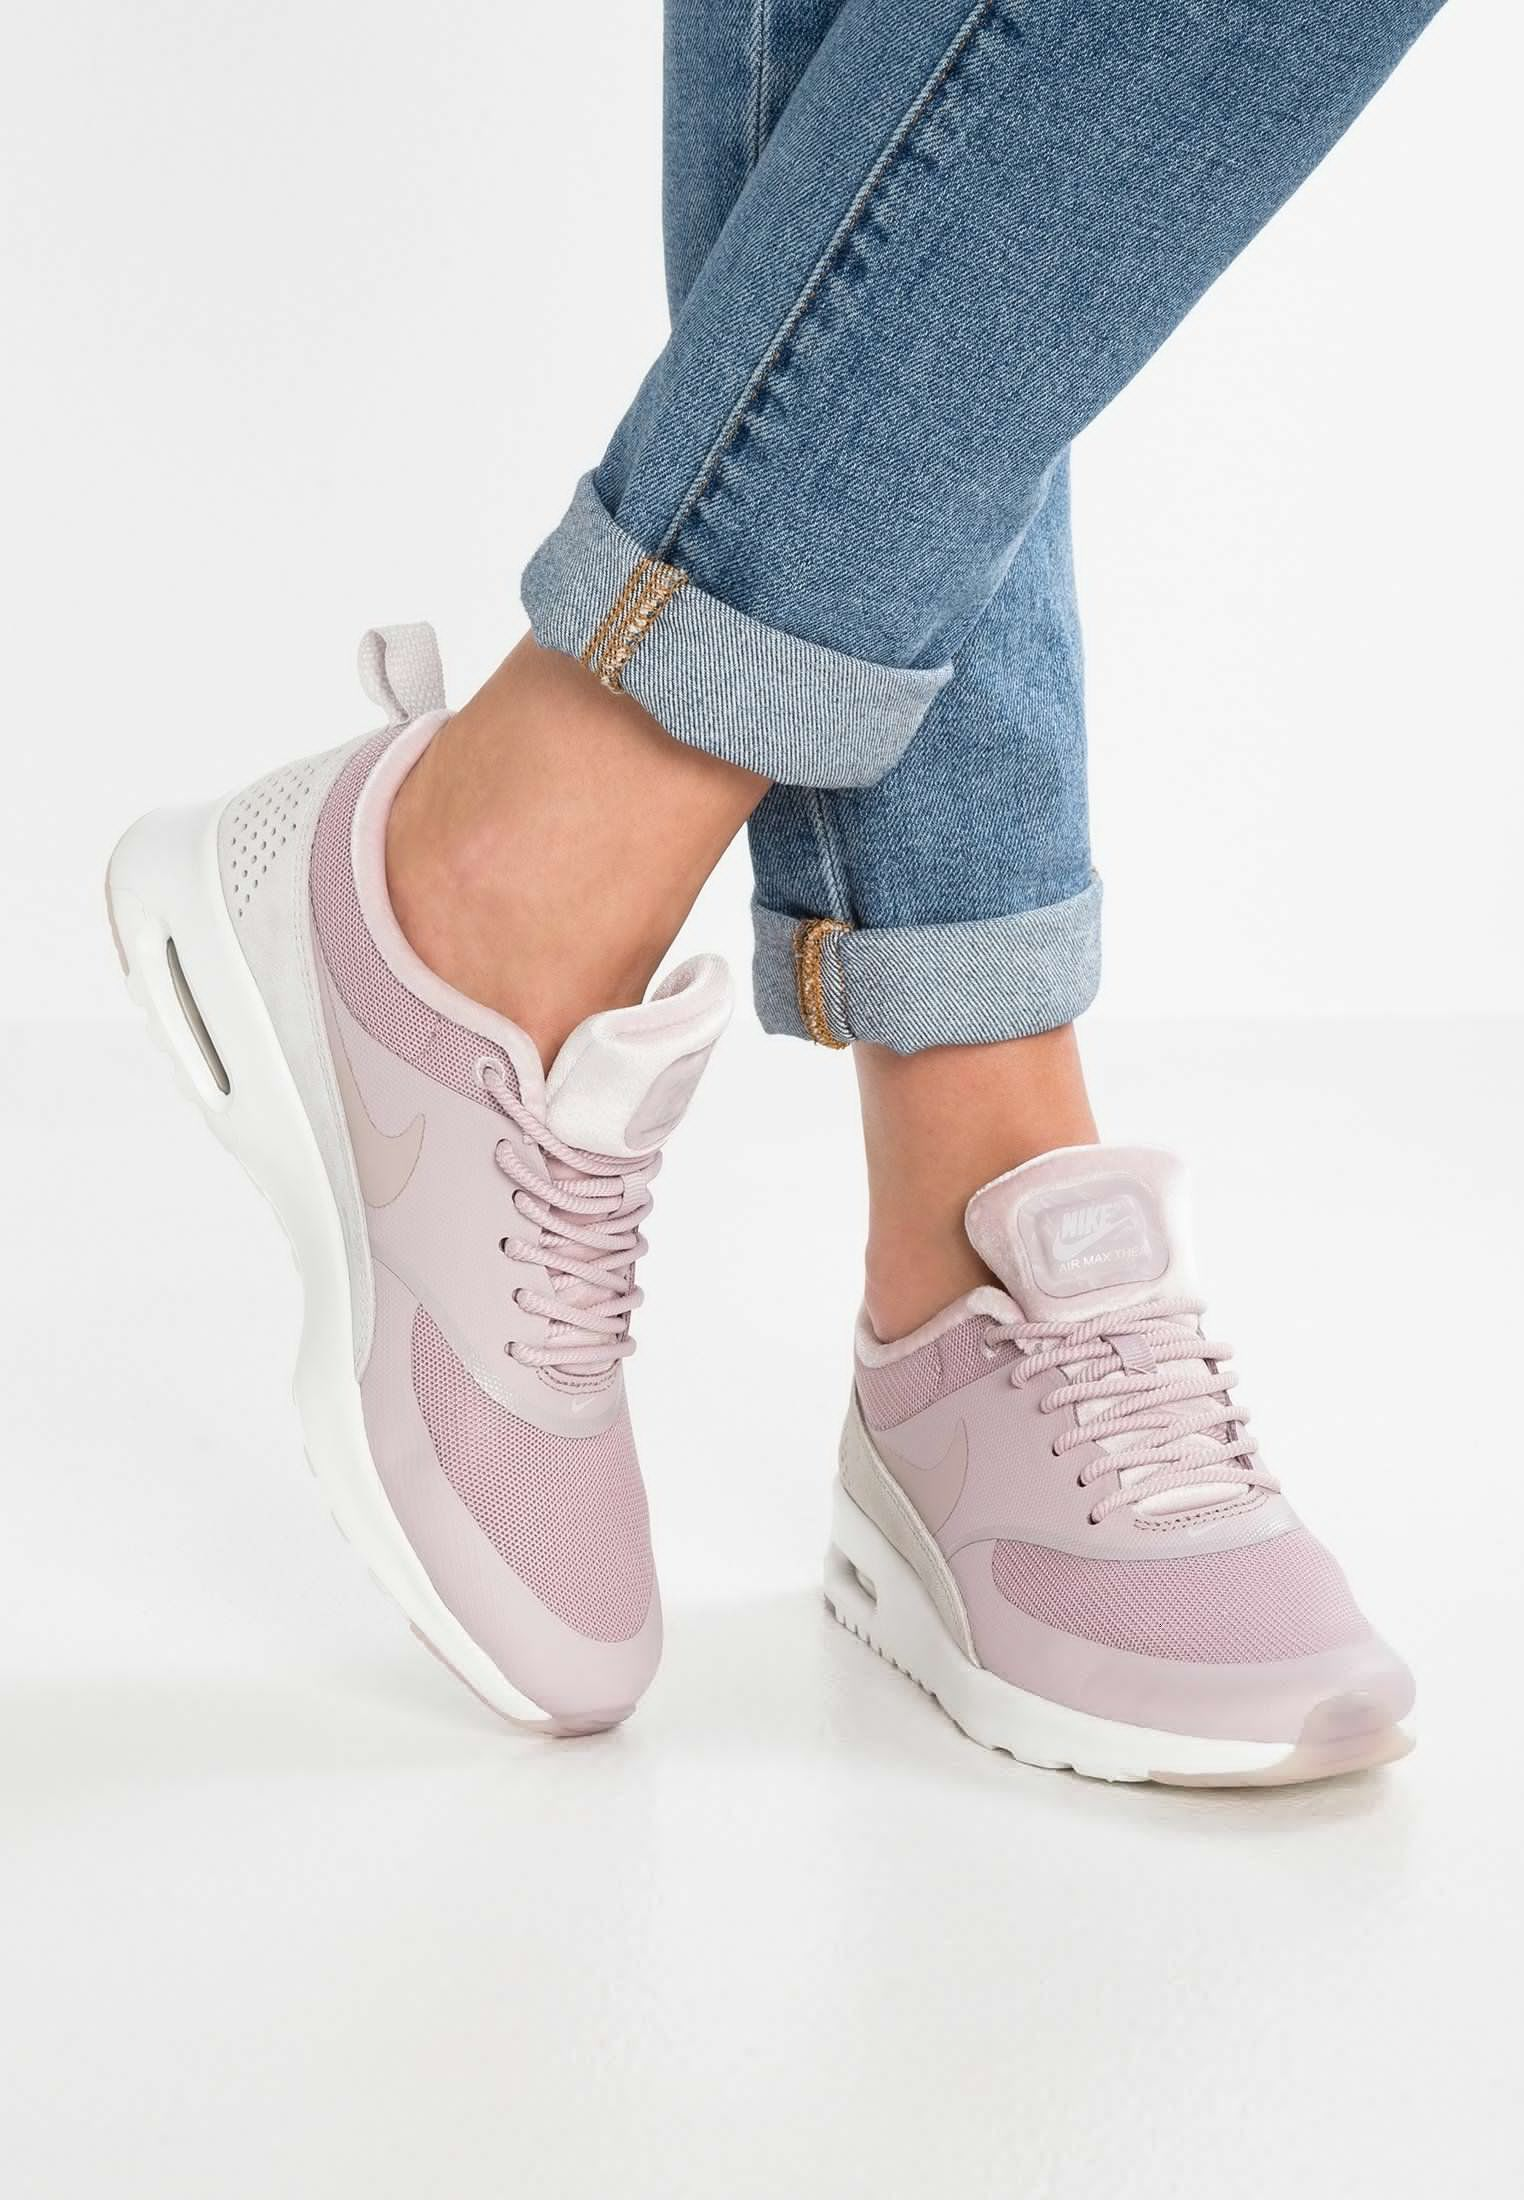 NIKE SPORTSWEAR Air Max Thea LX Sneakers for Women Pink